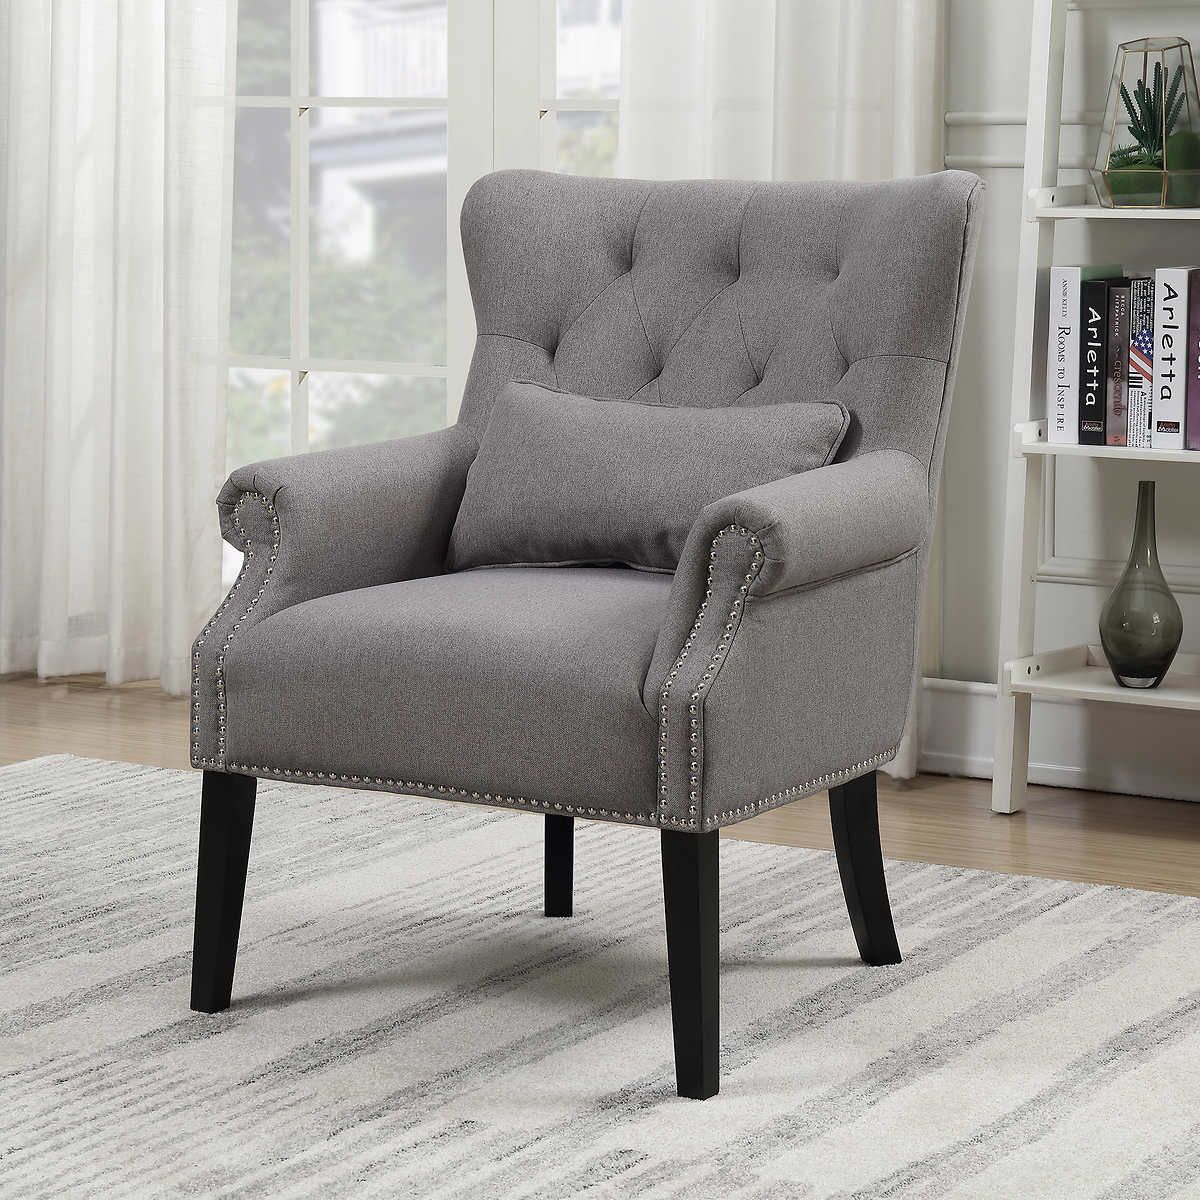 Accent Chairs At Costco Costco Accent Chair Gray 300 New Alpharetta Home